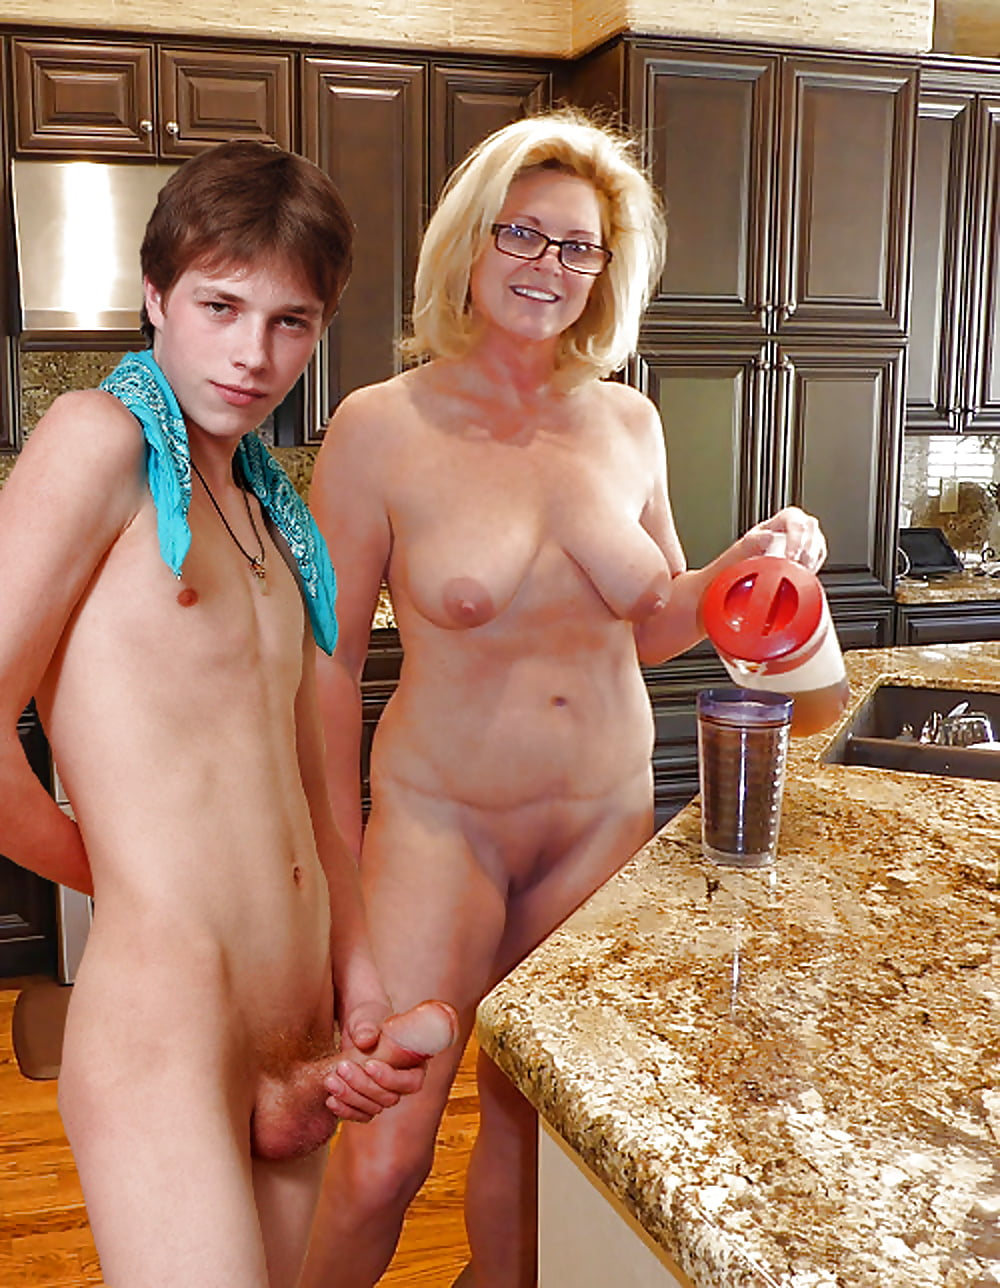 Mom with boy naked american naked mans